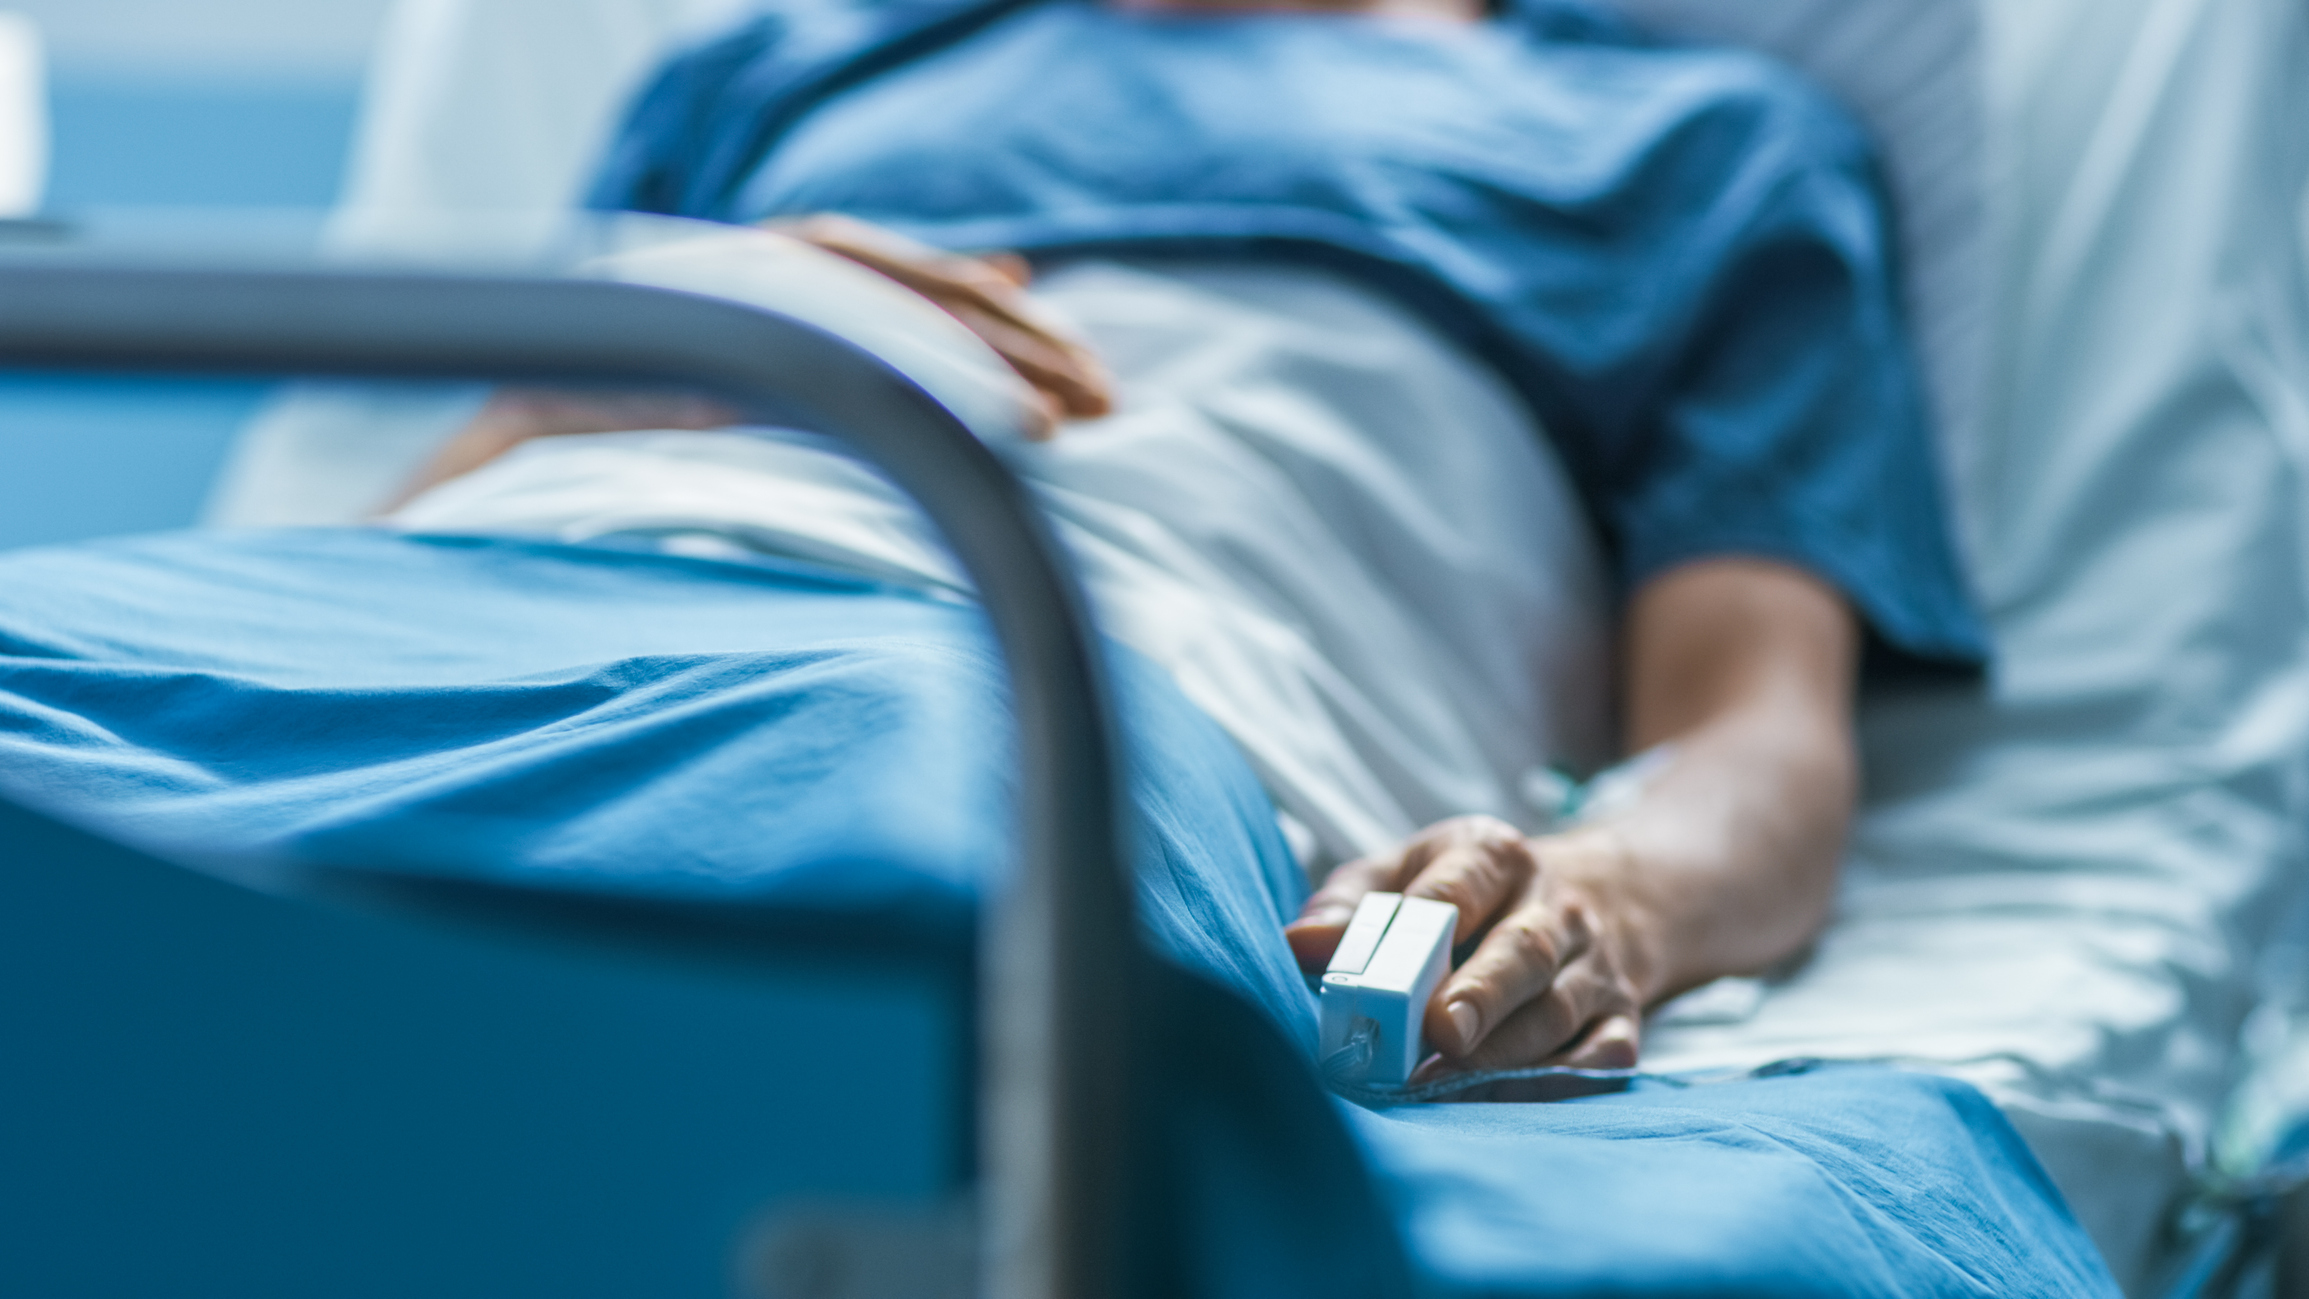 Hospital patient alone in bed. Image credit: iStock